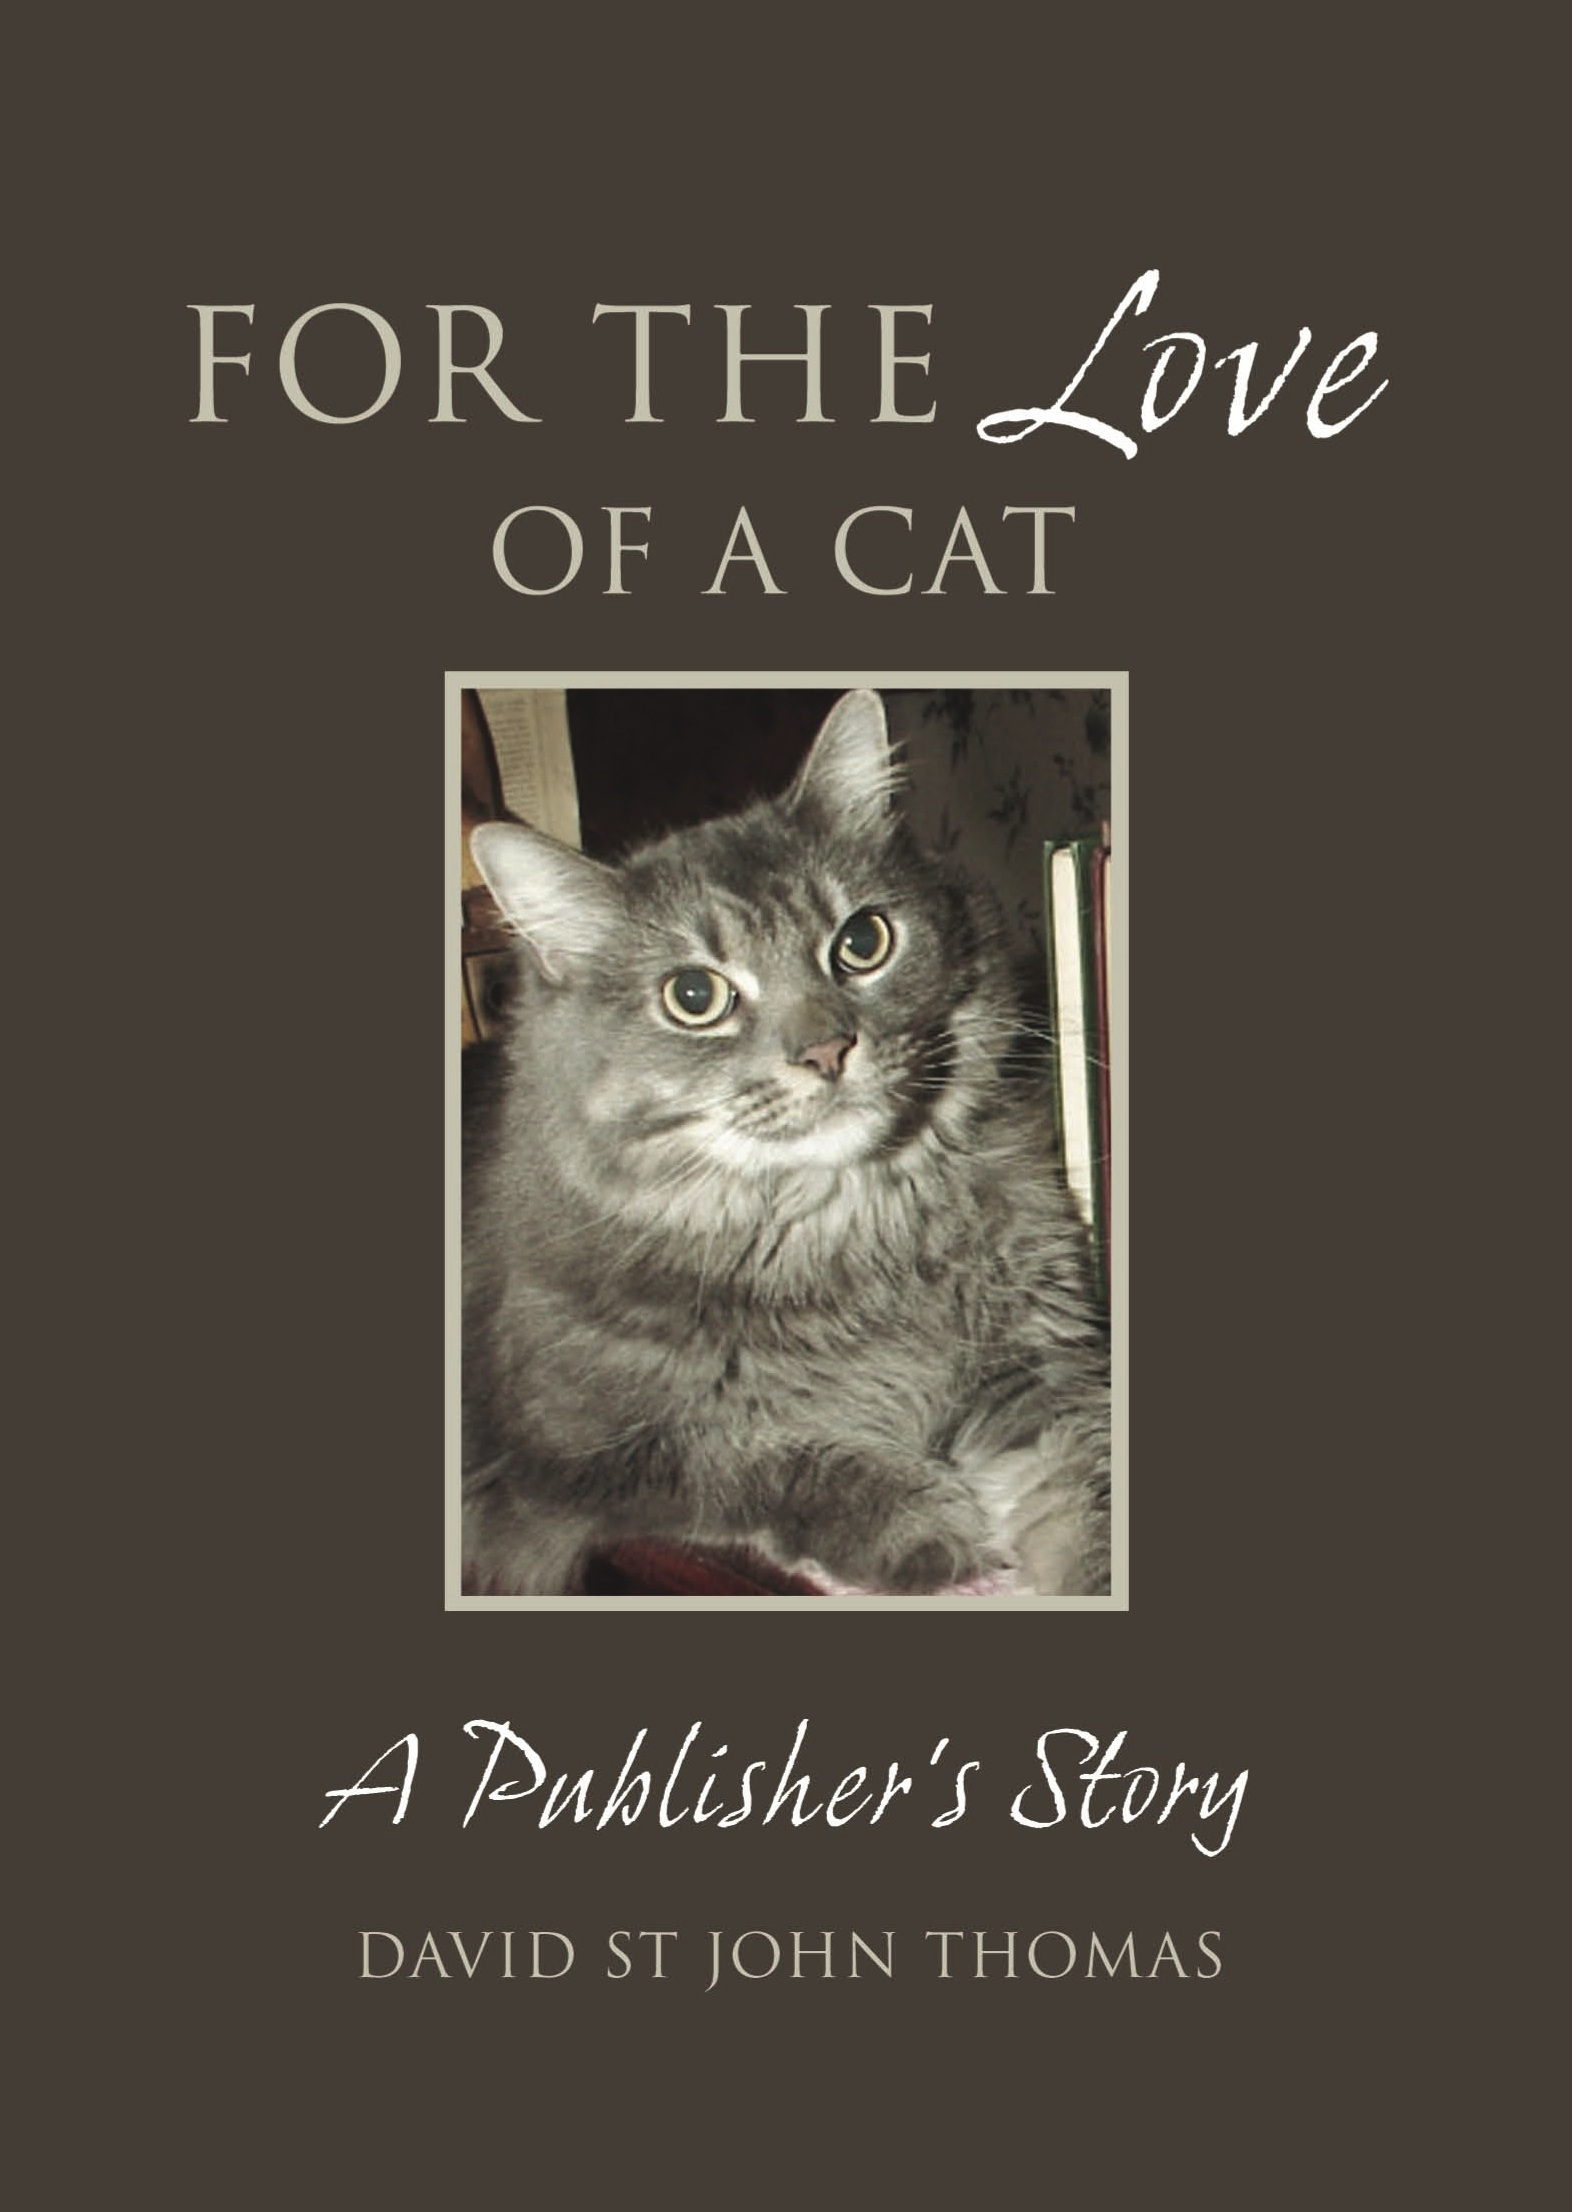 For the Love of a Cat By: David St John Thomas